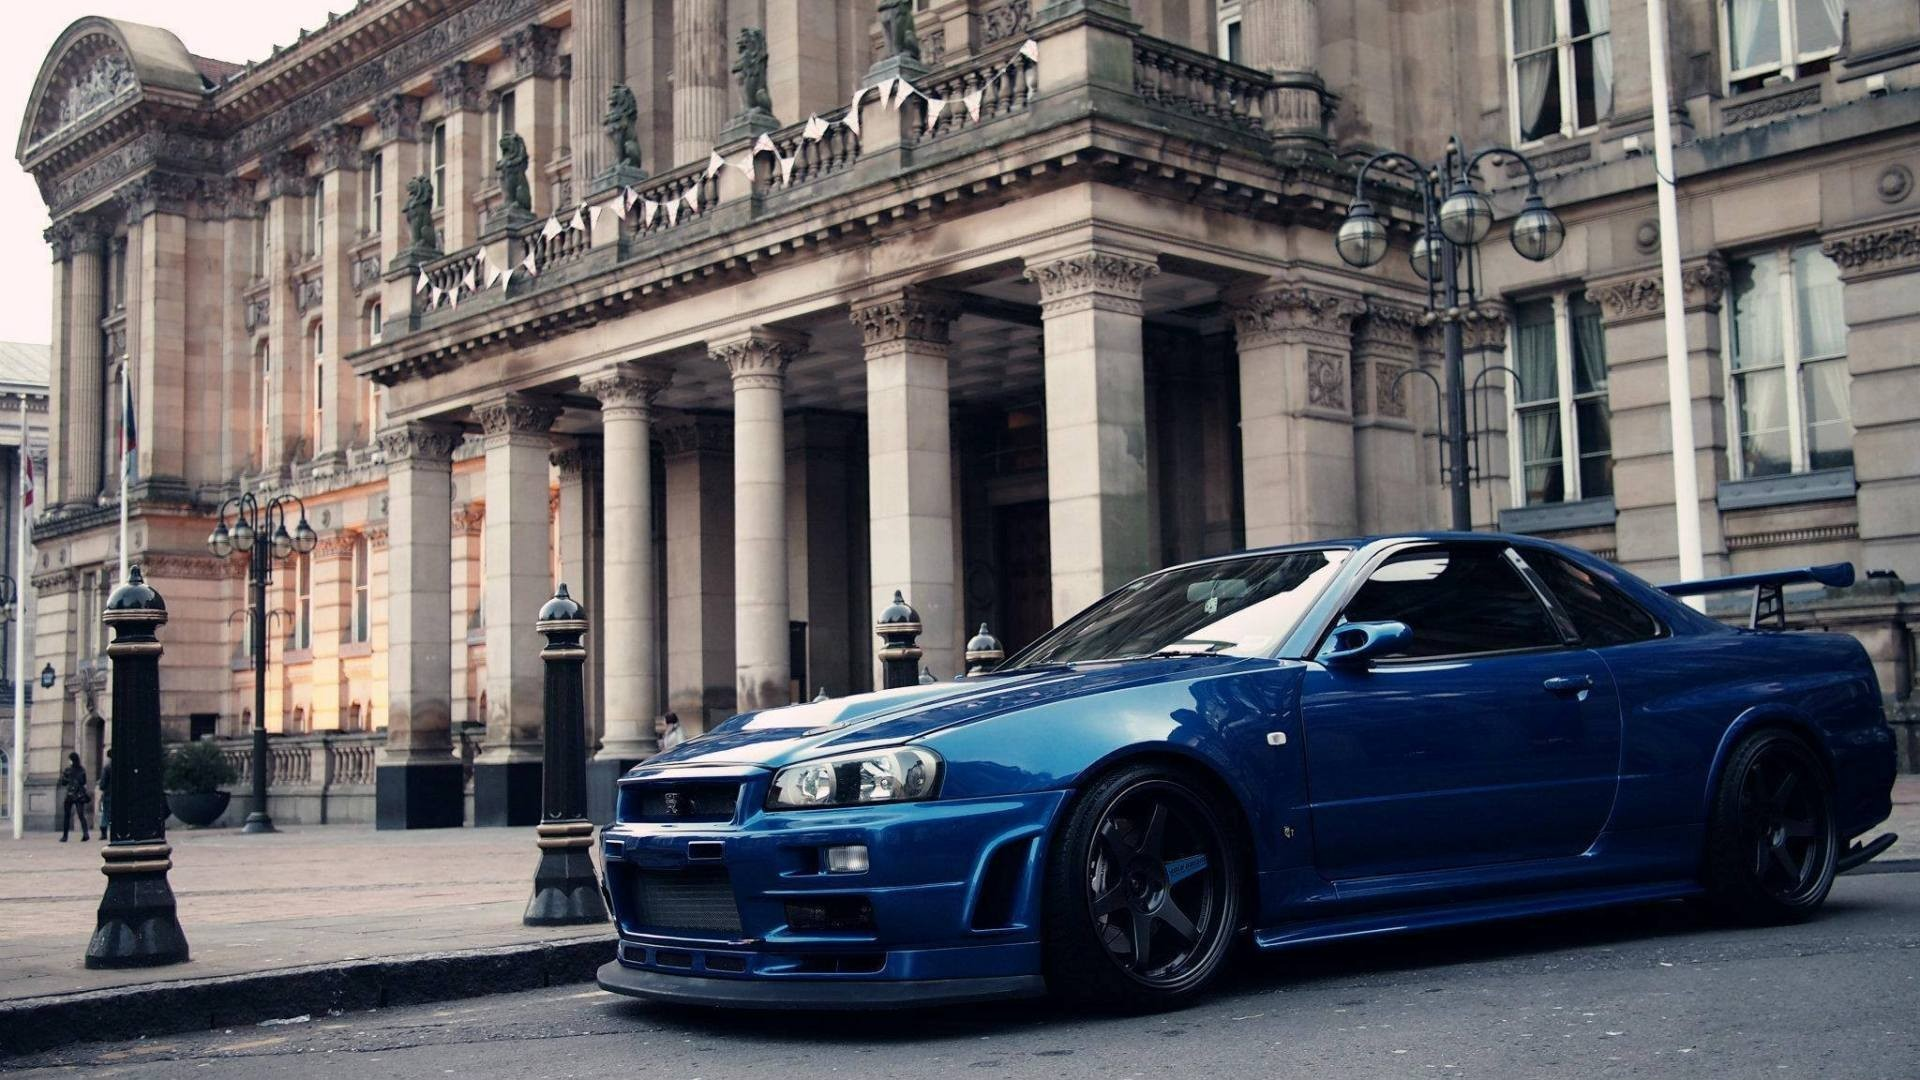 1920x1080  Black Nissan Skyline GTR R wallpapers and images wallpapers |  Wallpapers 4k | Pinterest | Nissan skyline, Hd wallpaper and Wallpaper